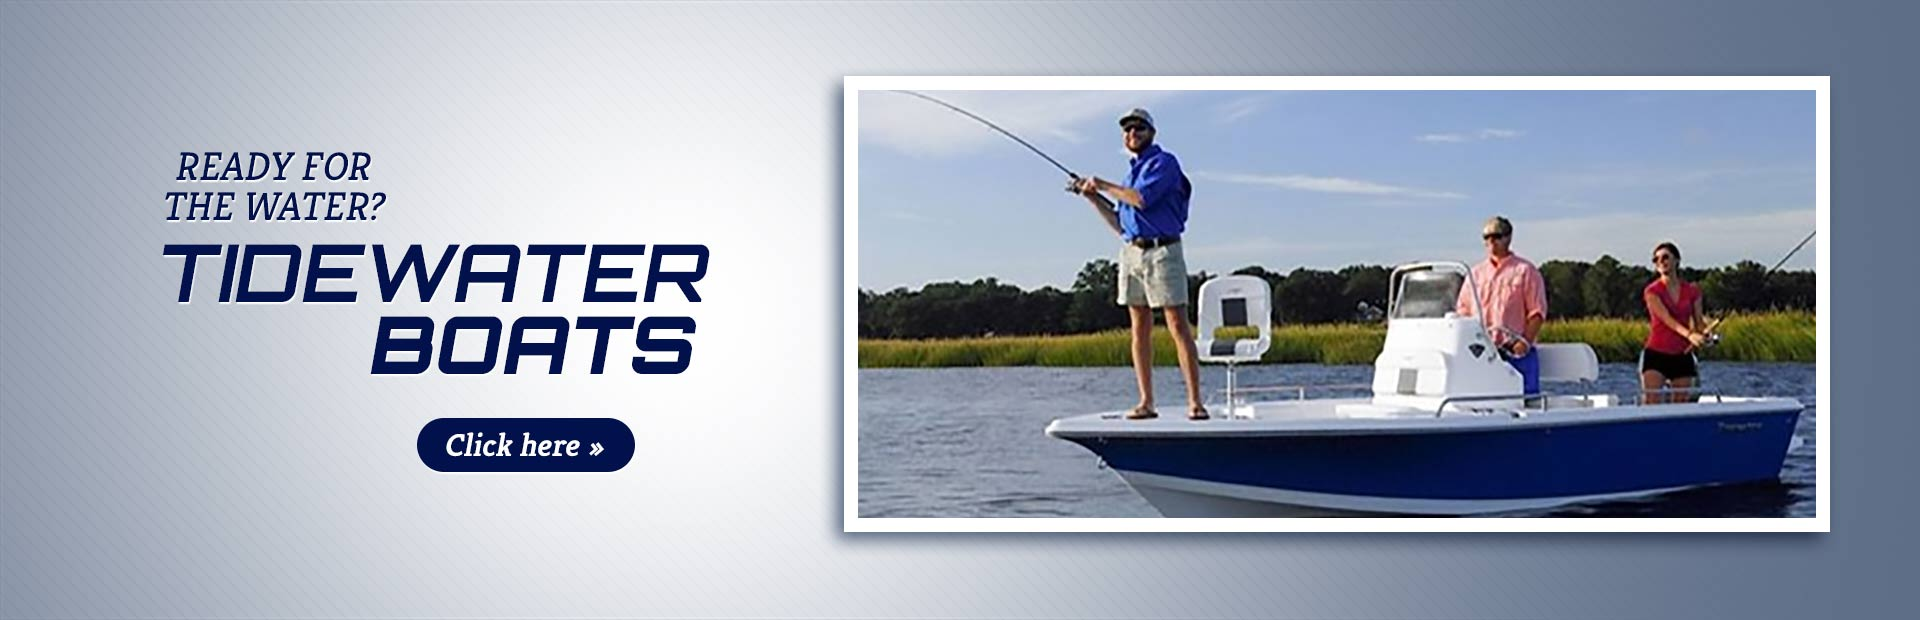 TideWater Boats: Click here to view our selection!